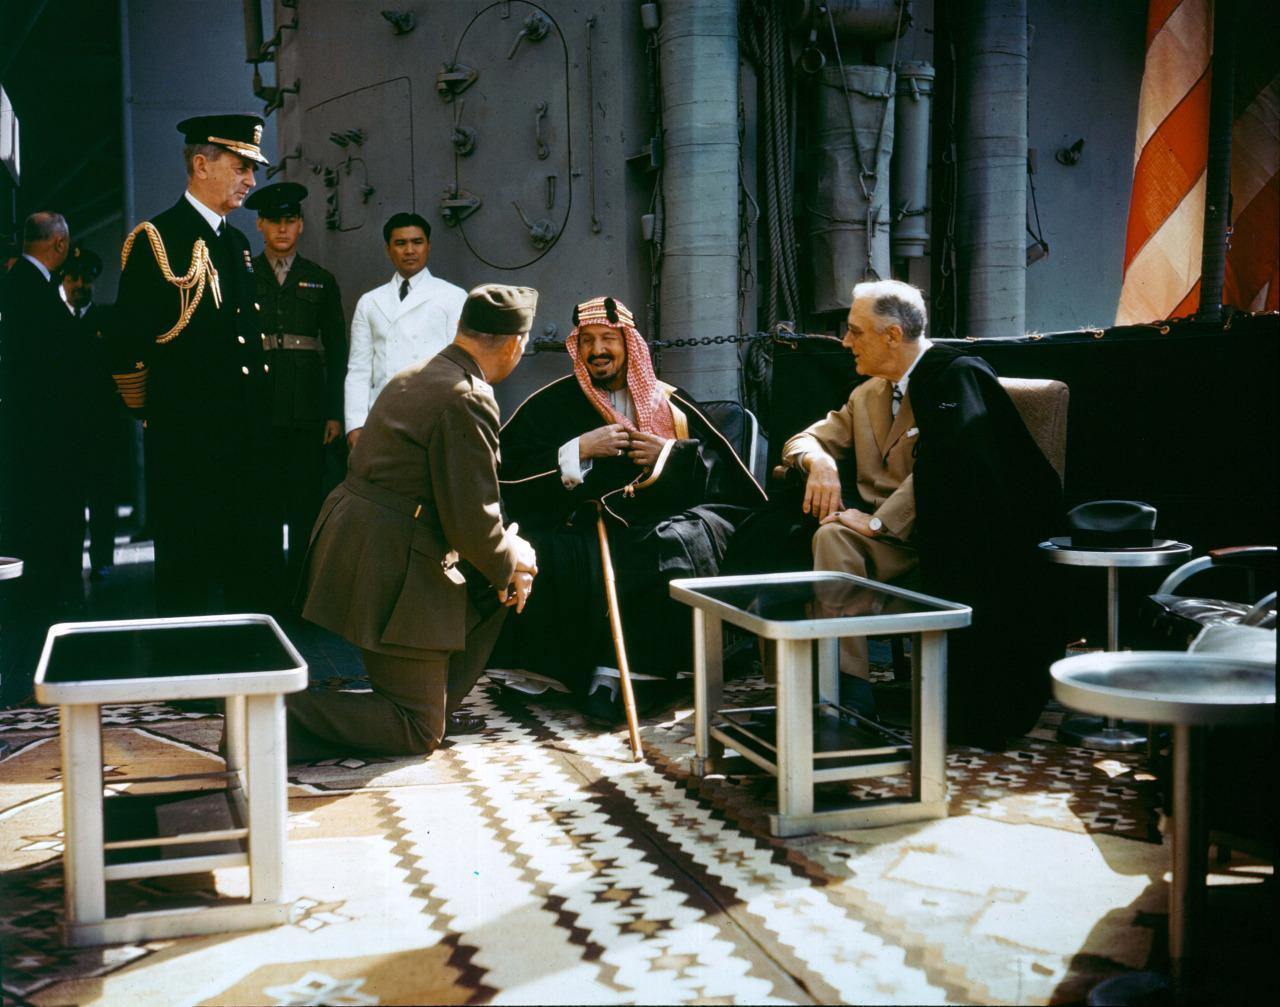 President Franklin Roosevelt meets with King Ibn Saud, of Saudi Arabia, on board USS Quincy in the Great Bitter Lake, Egypt, on 14 Feb. 1945.